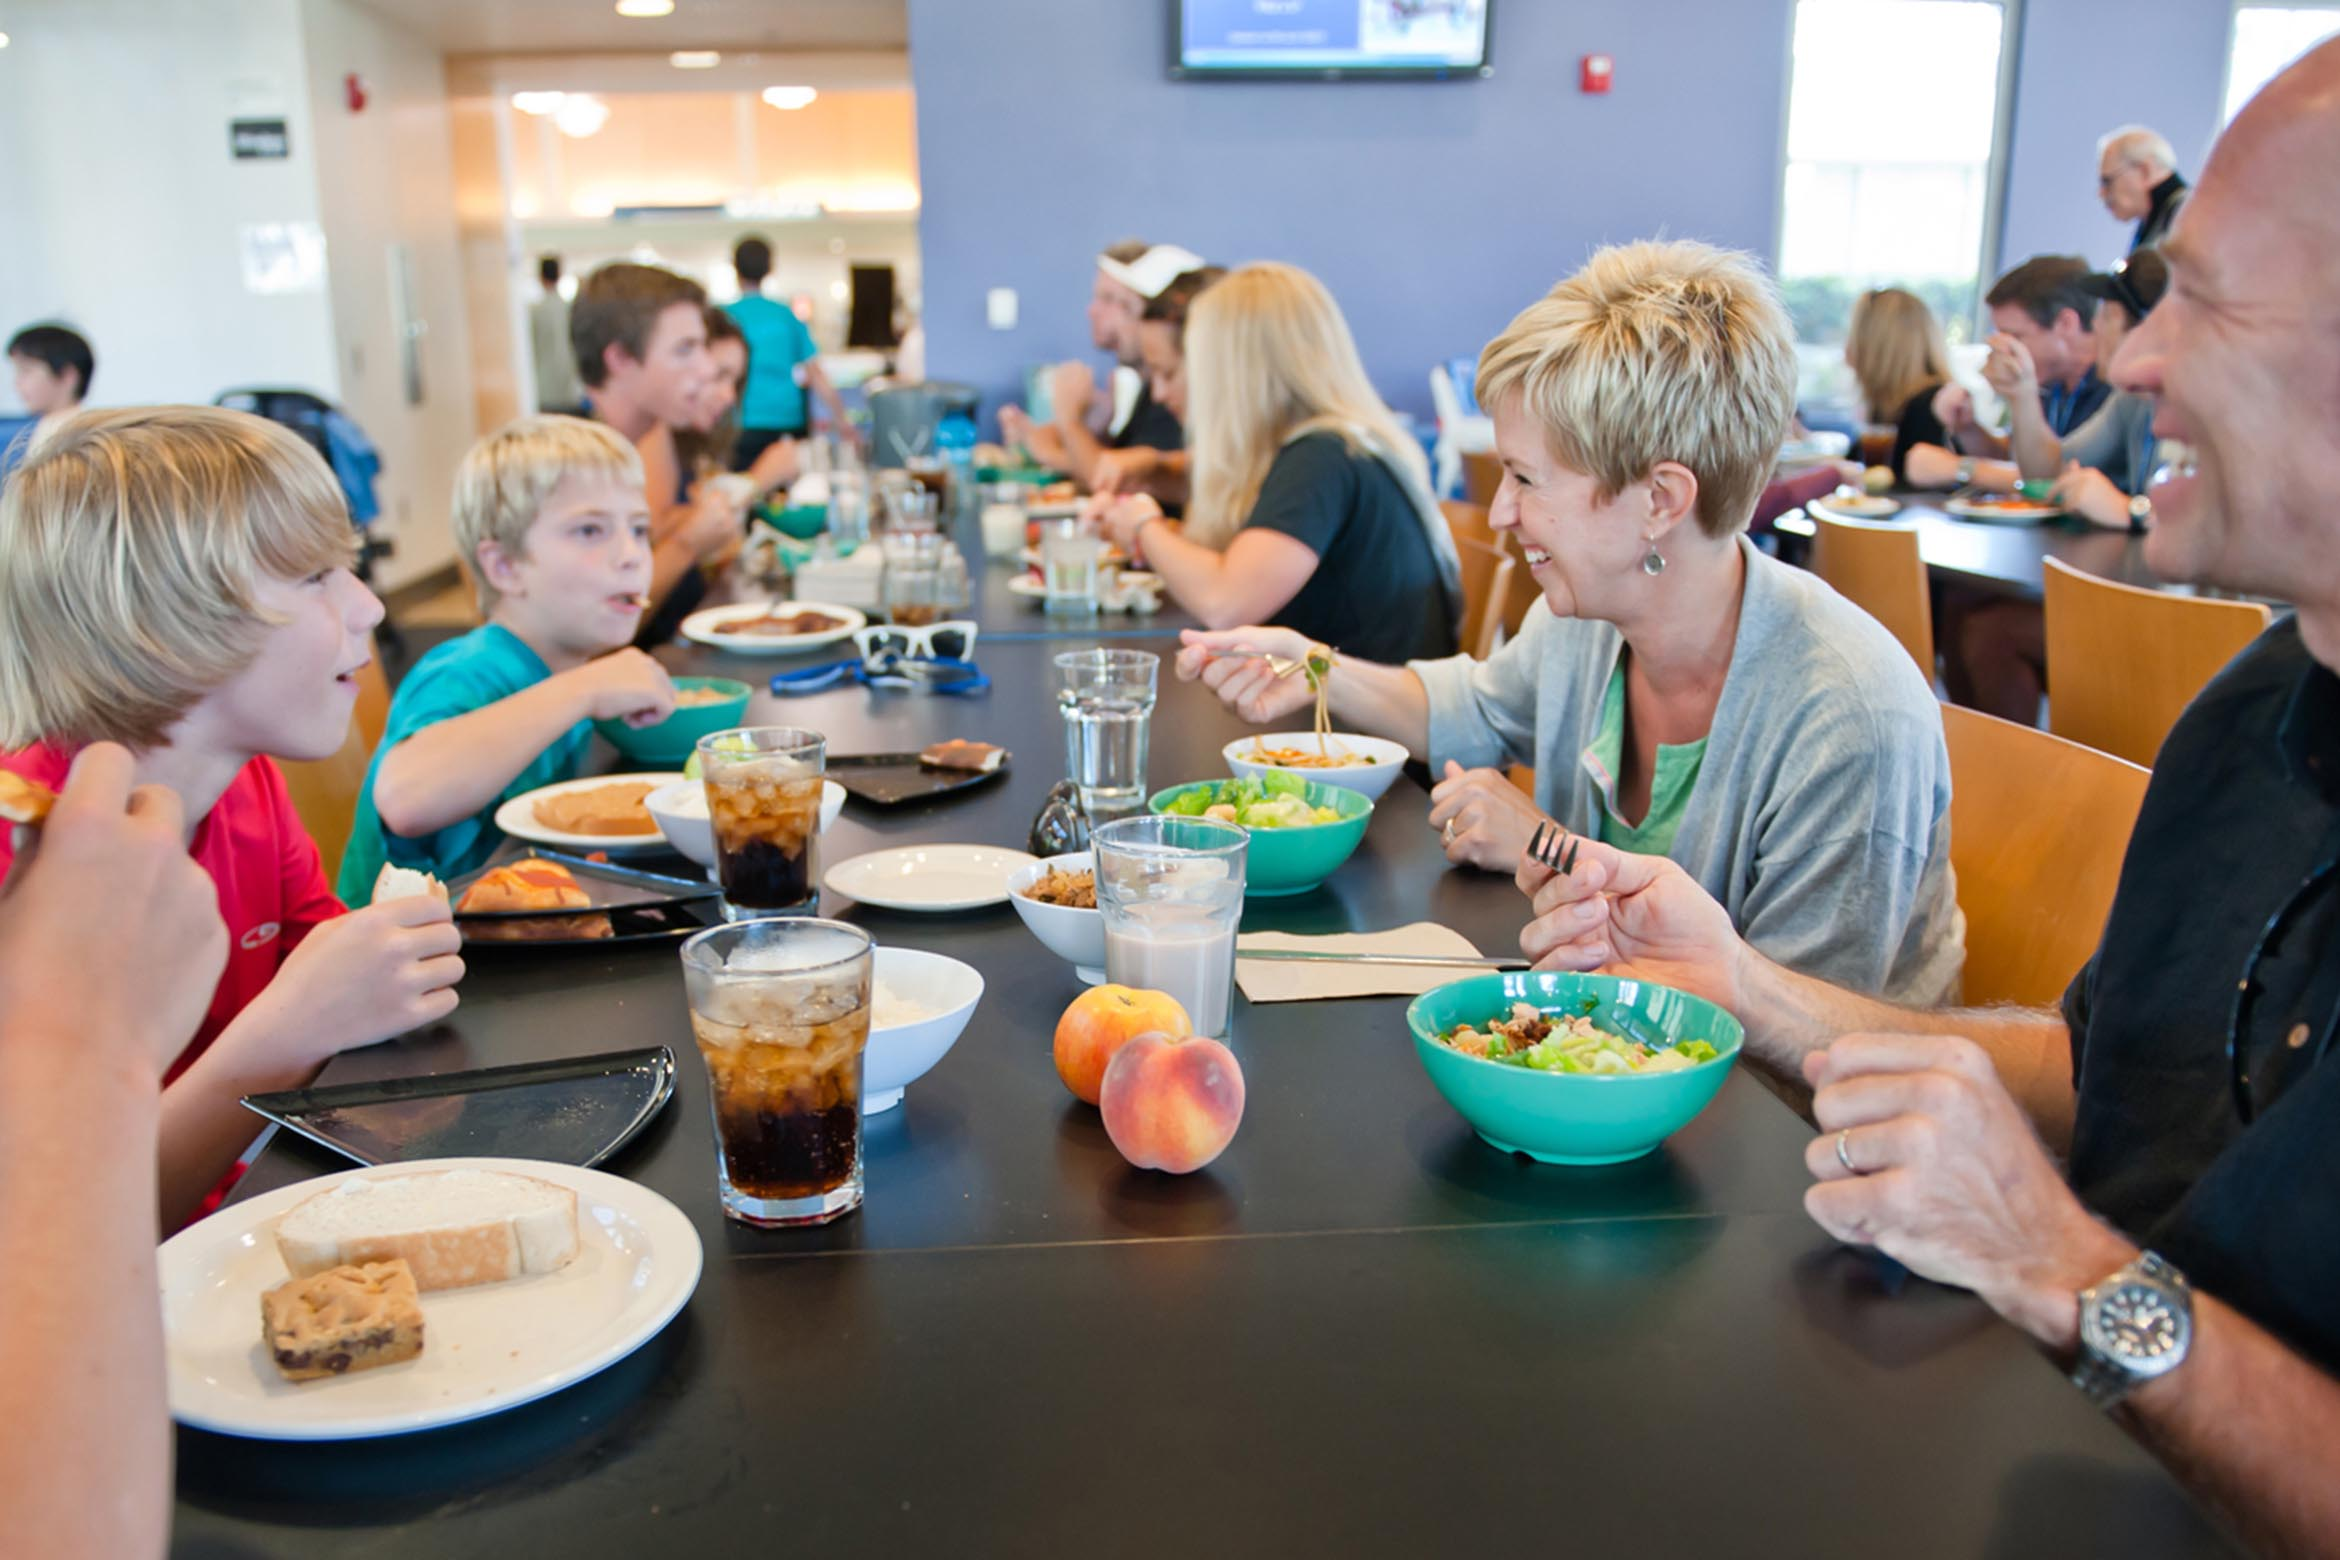 Family eating a meal together in the dining commons.